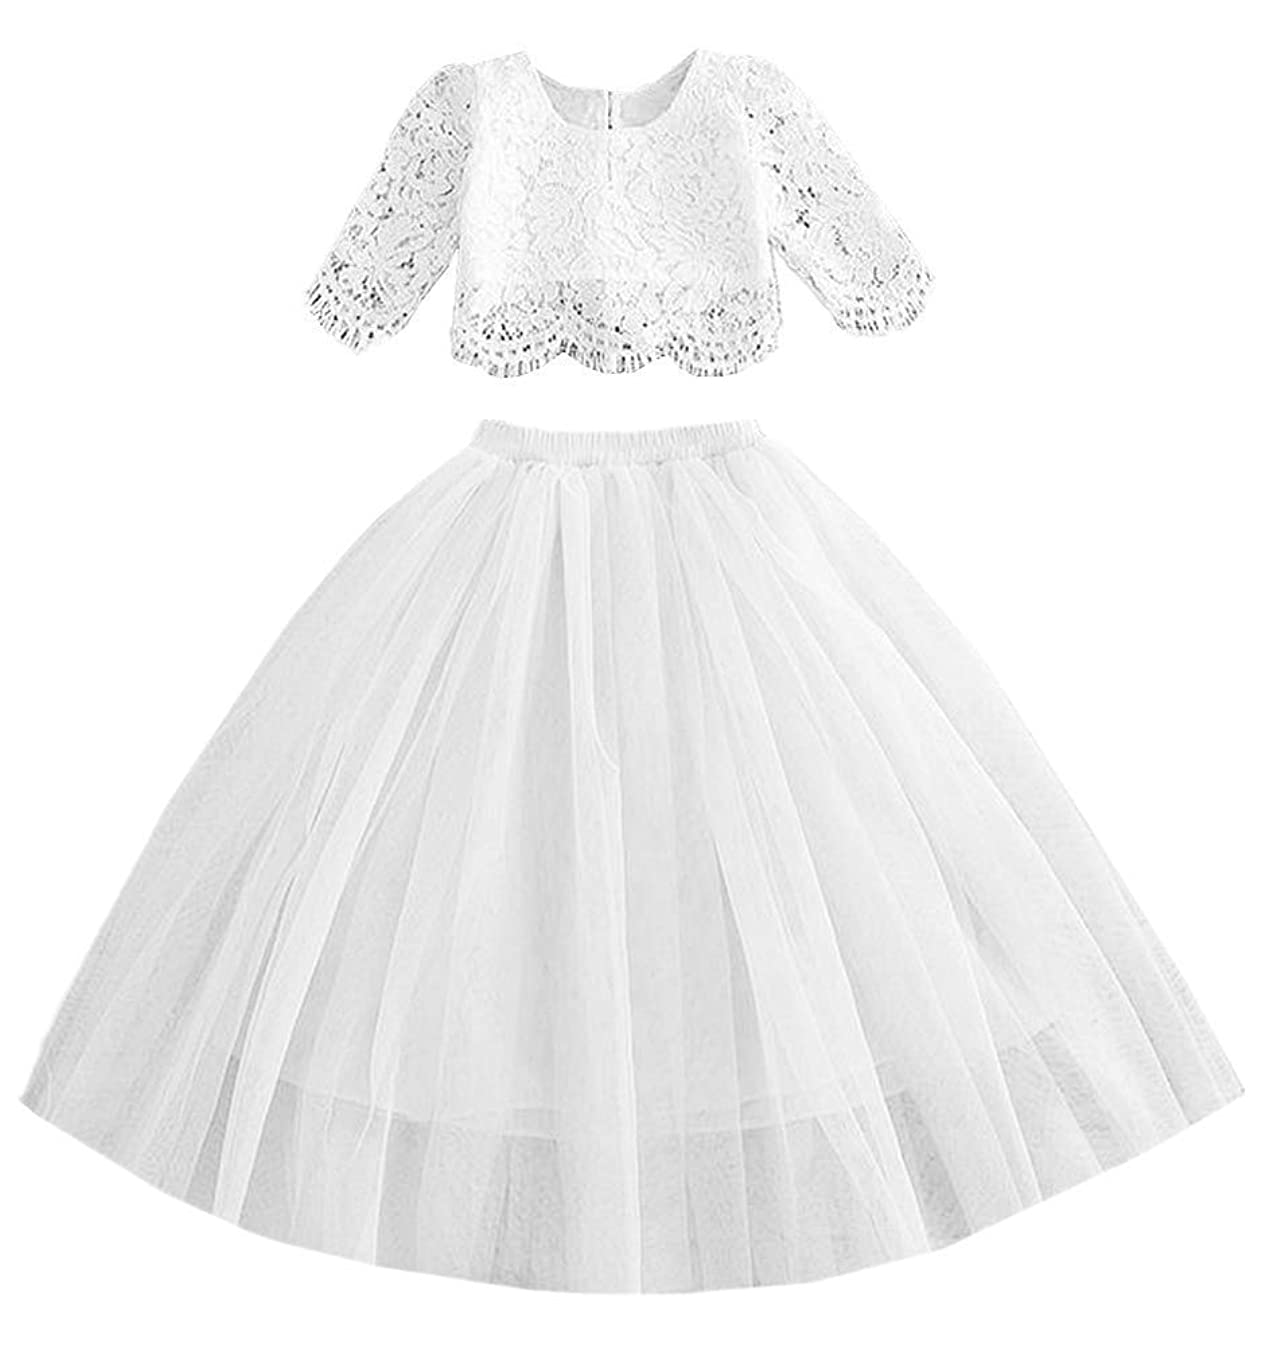 2Bunnies Girl Lace Straight Tutu Tulle Party Flower Girl Dress Set